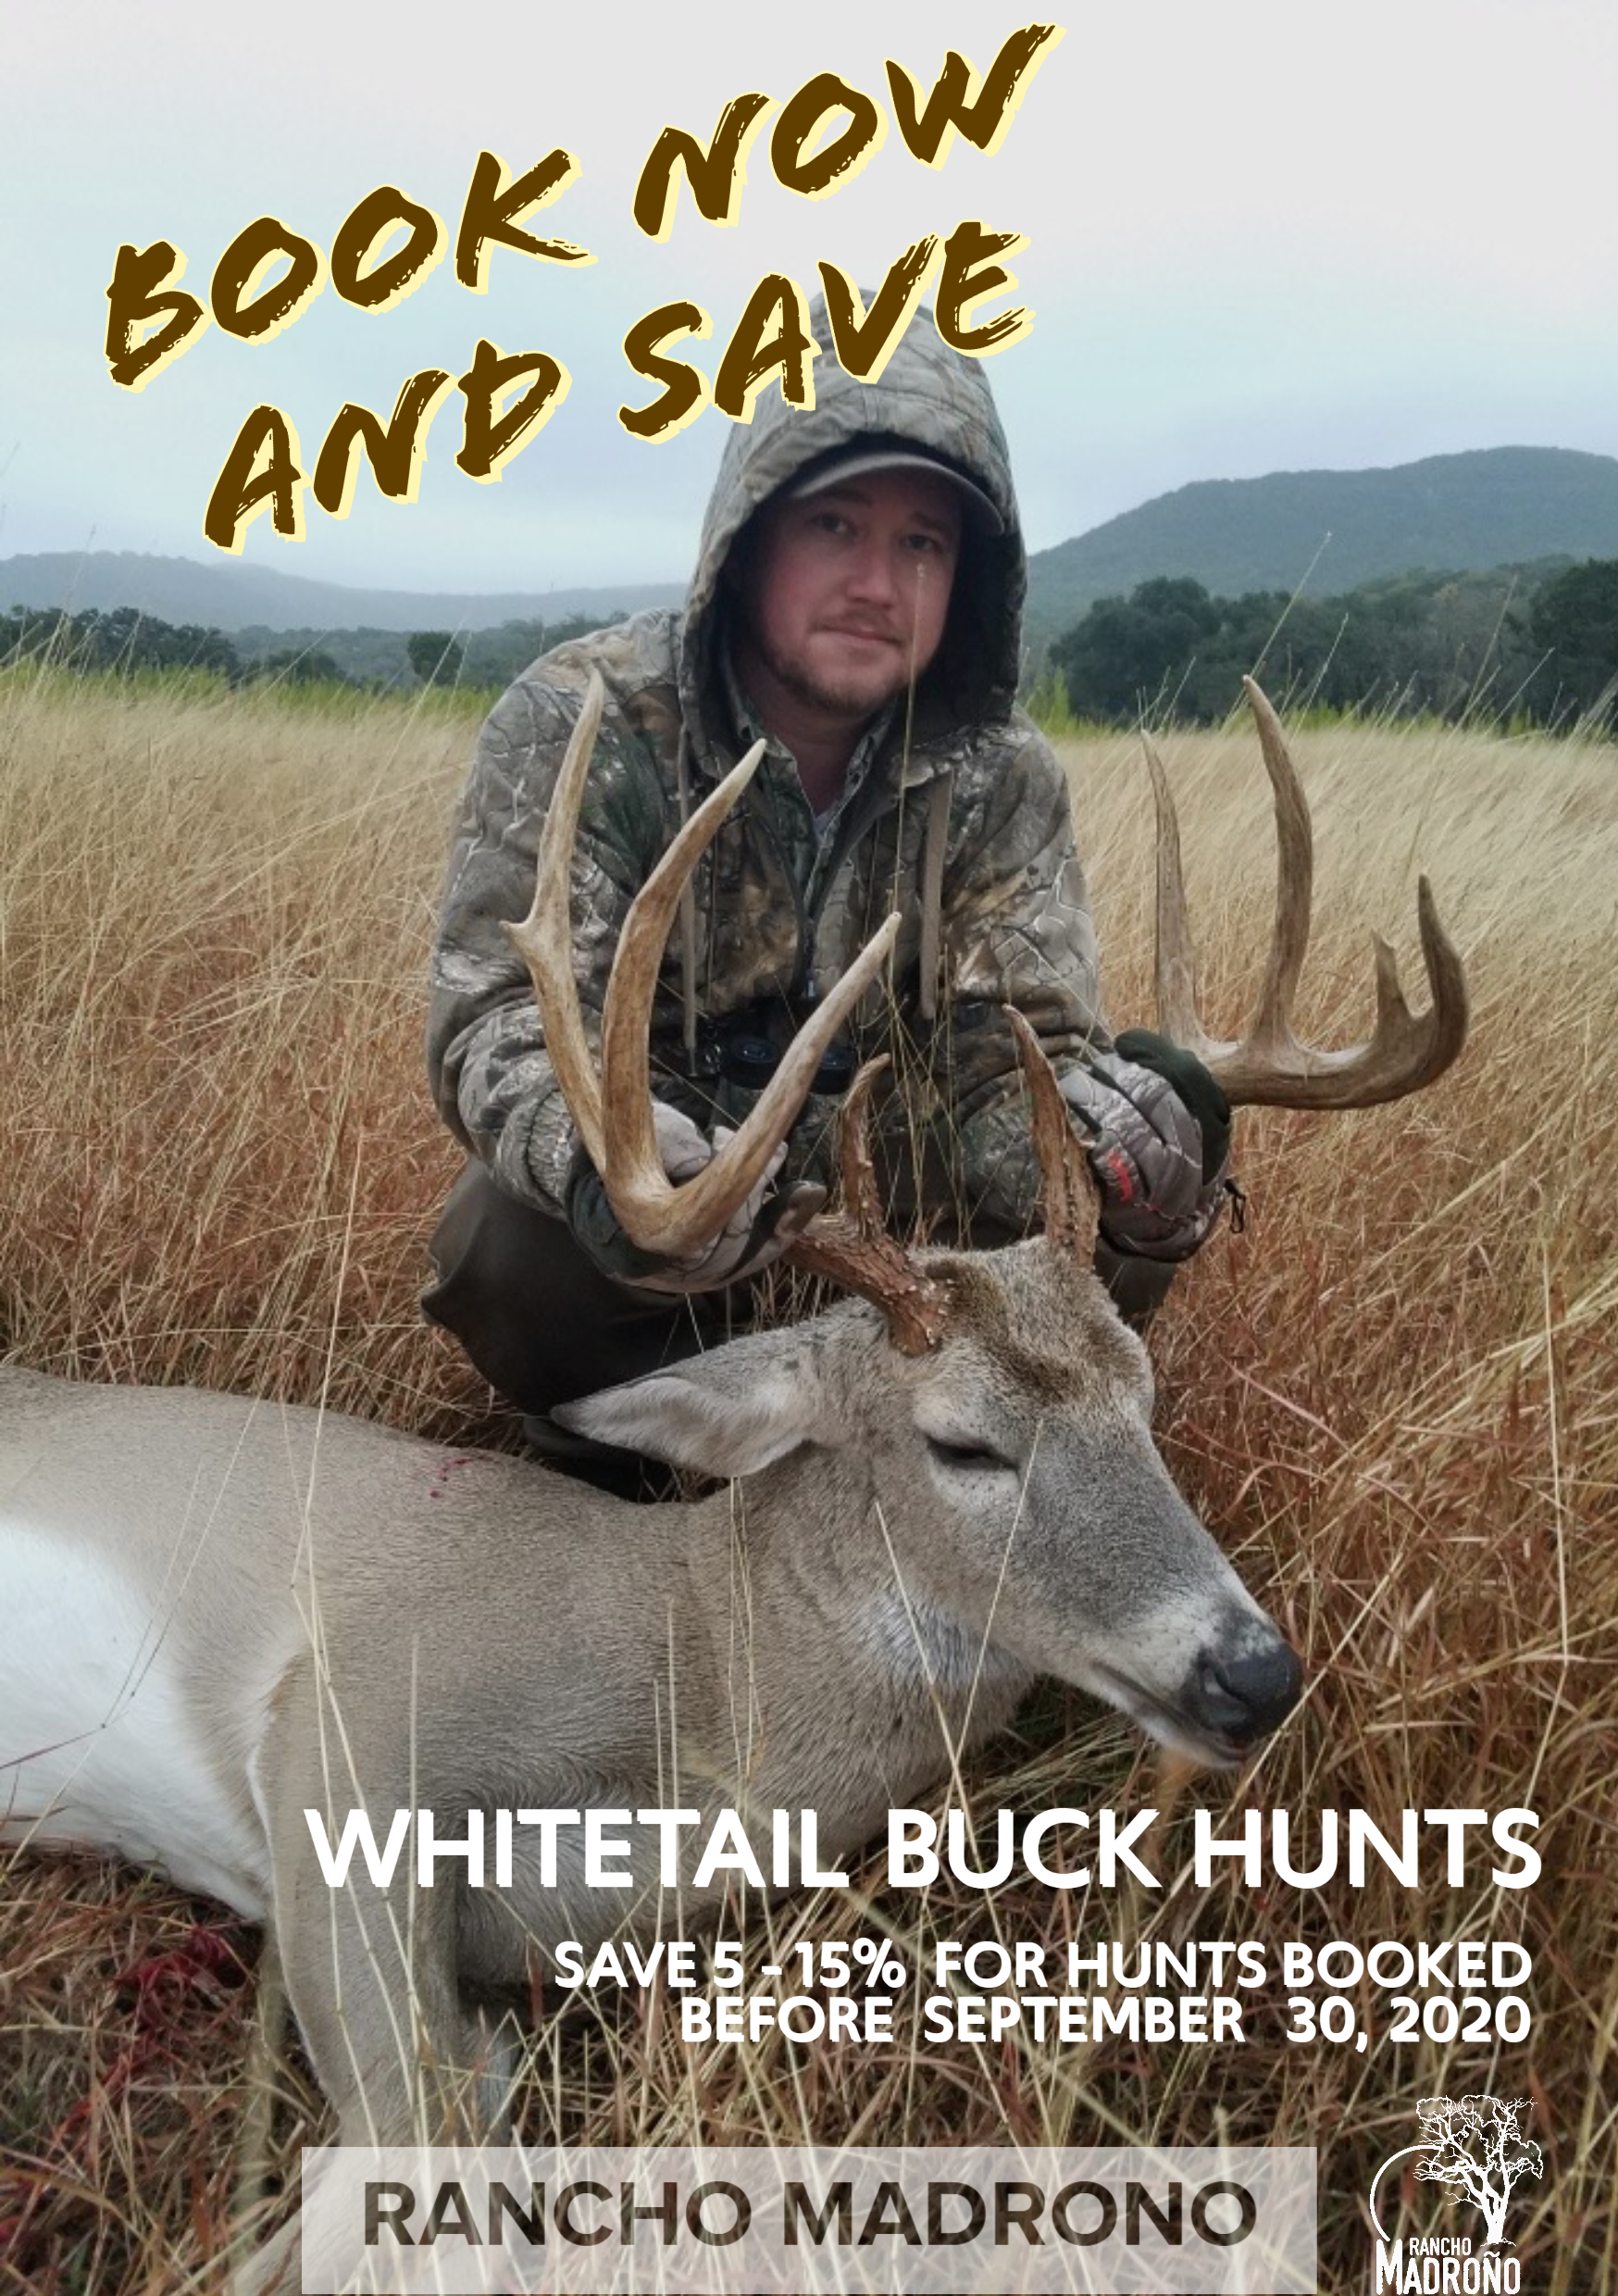 Book Early and Save on a Whitetail Buck Hunt in the Texas Hill Country